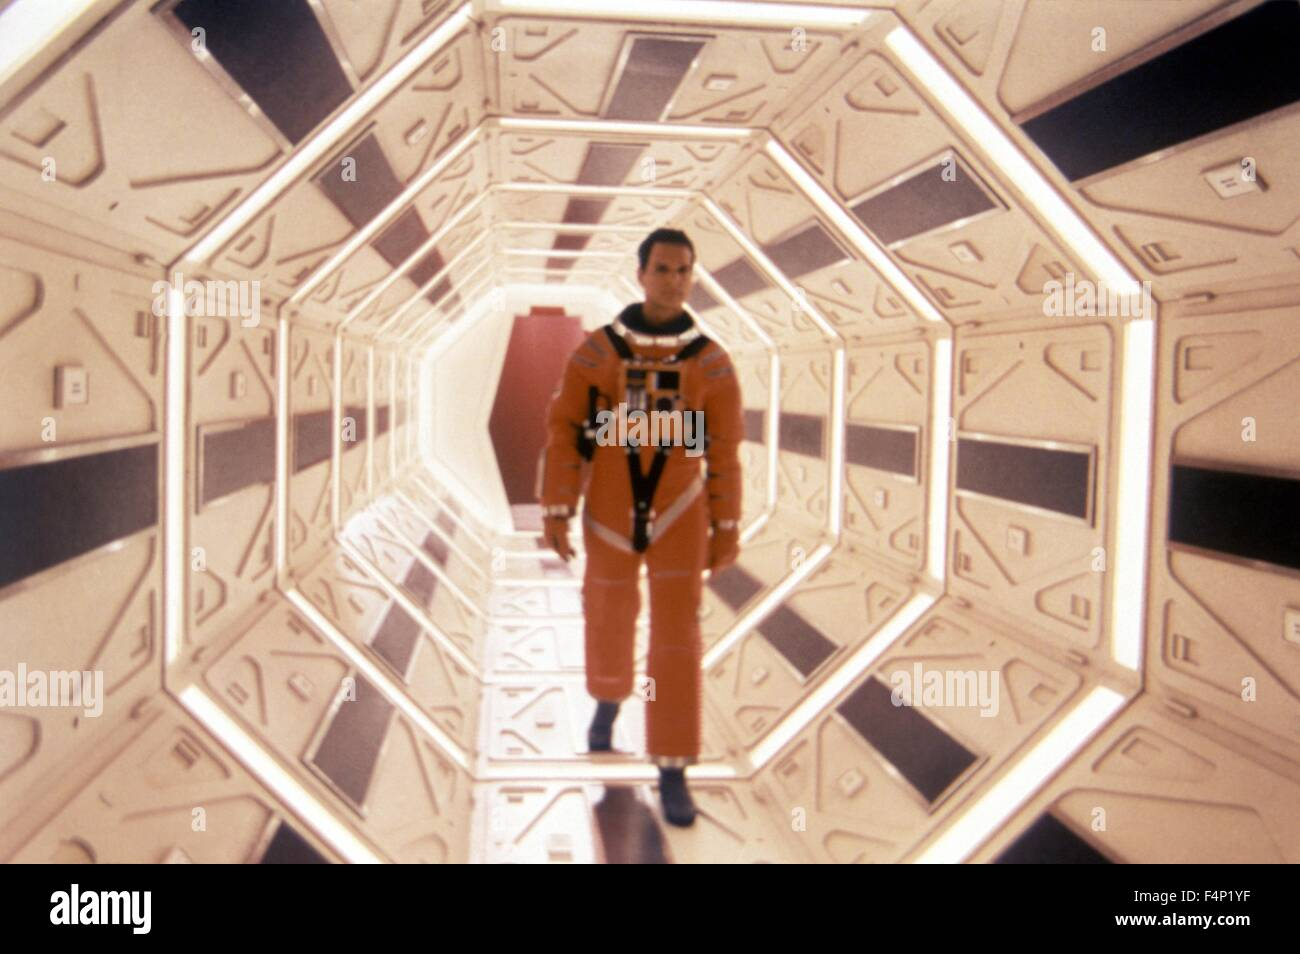 Gary Lockwood / 2001 A Space Odyssey 1968 directed by Stanley Kubrick - Stock Image